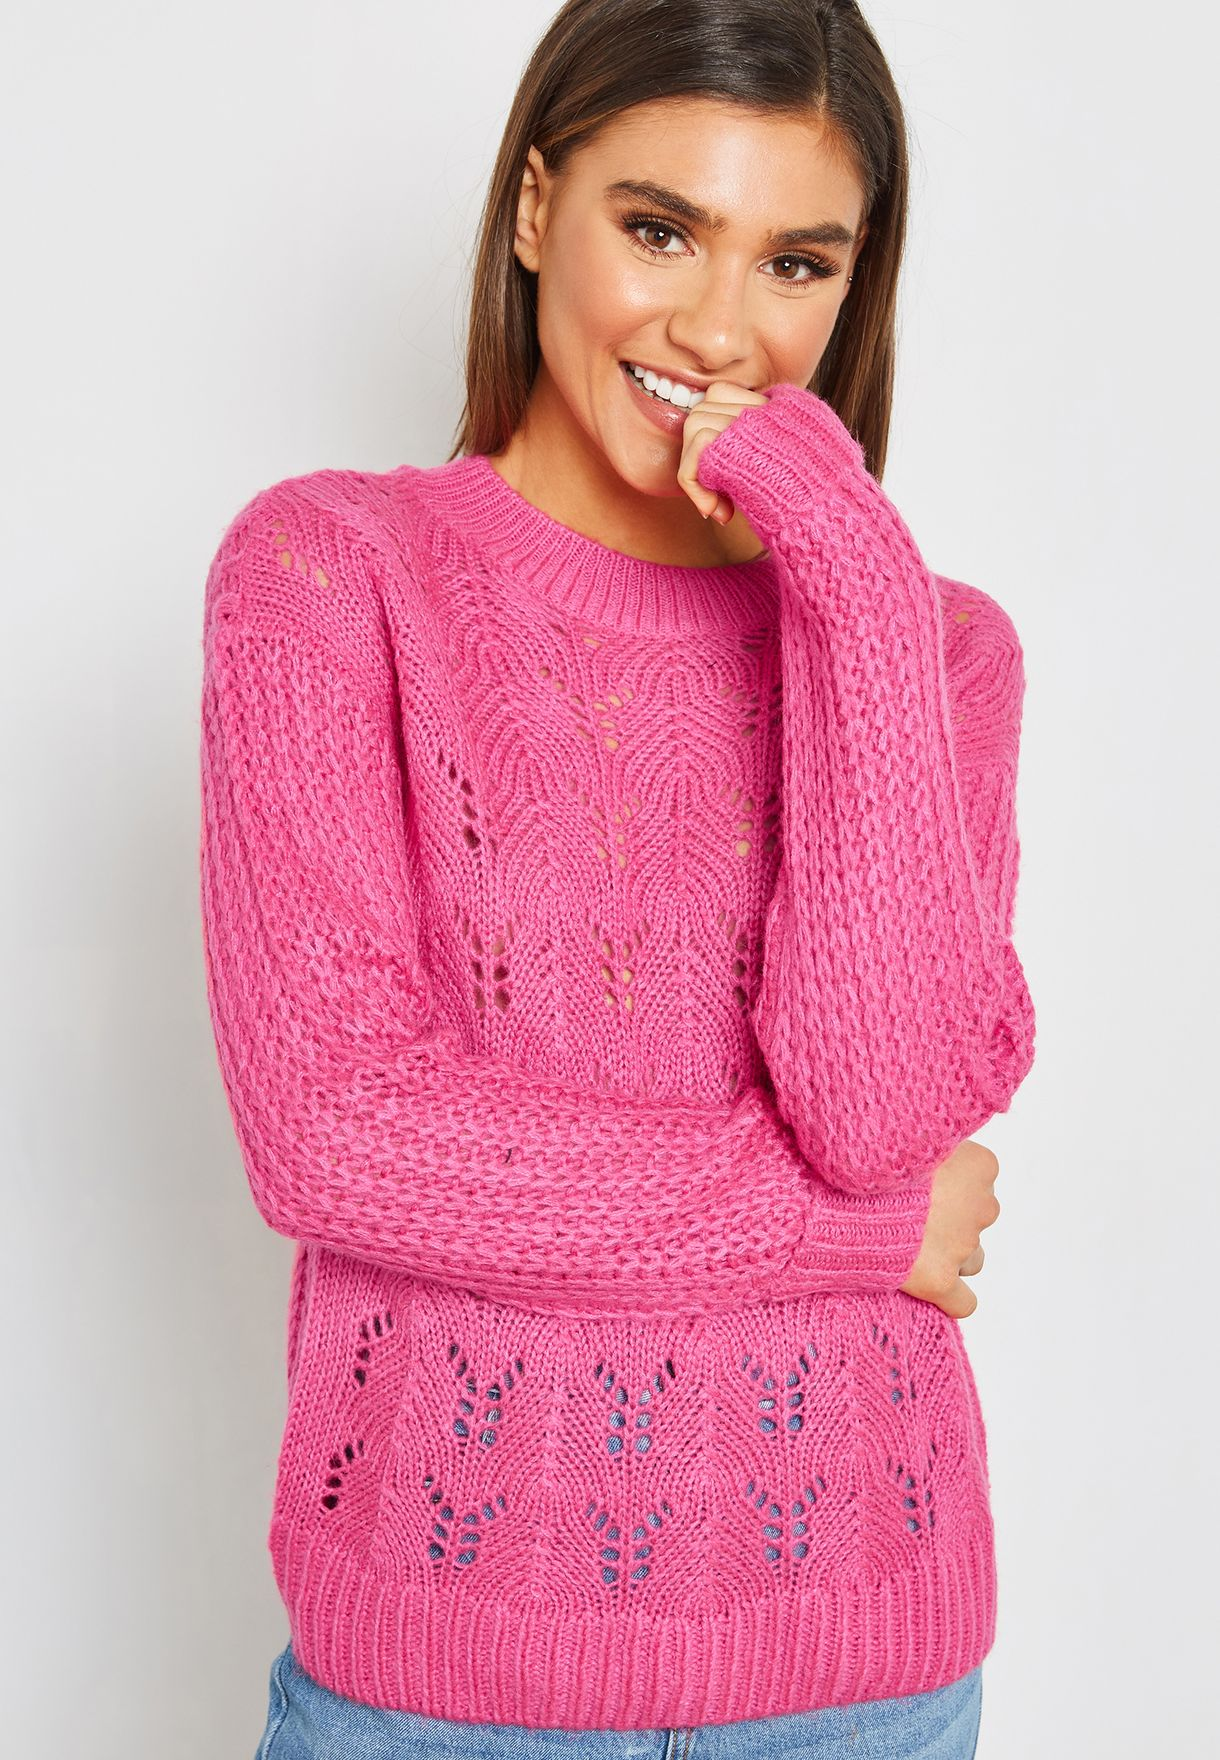 2746e6e4c50bfe Shop Noisy May pink Cable Knit Sweater 27002451 for Women in UAE ...